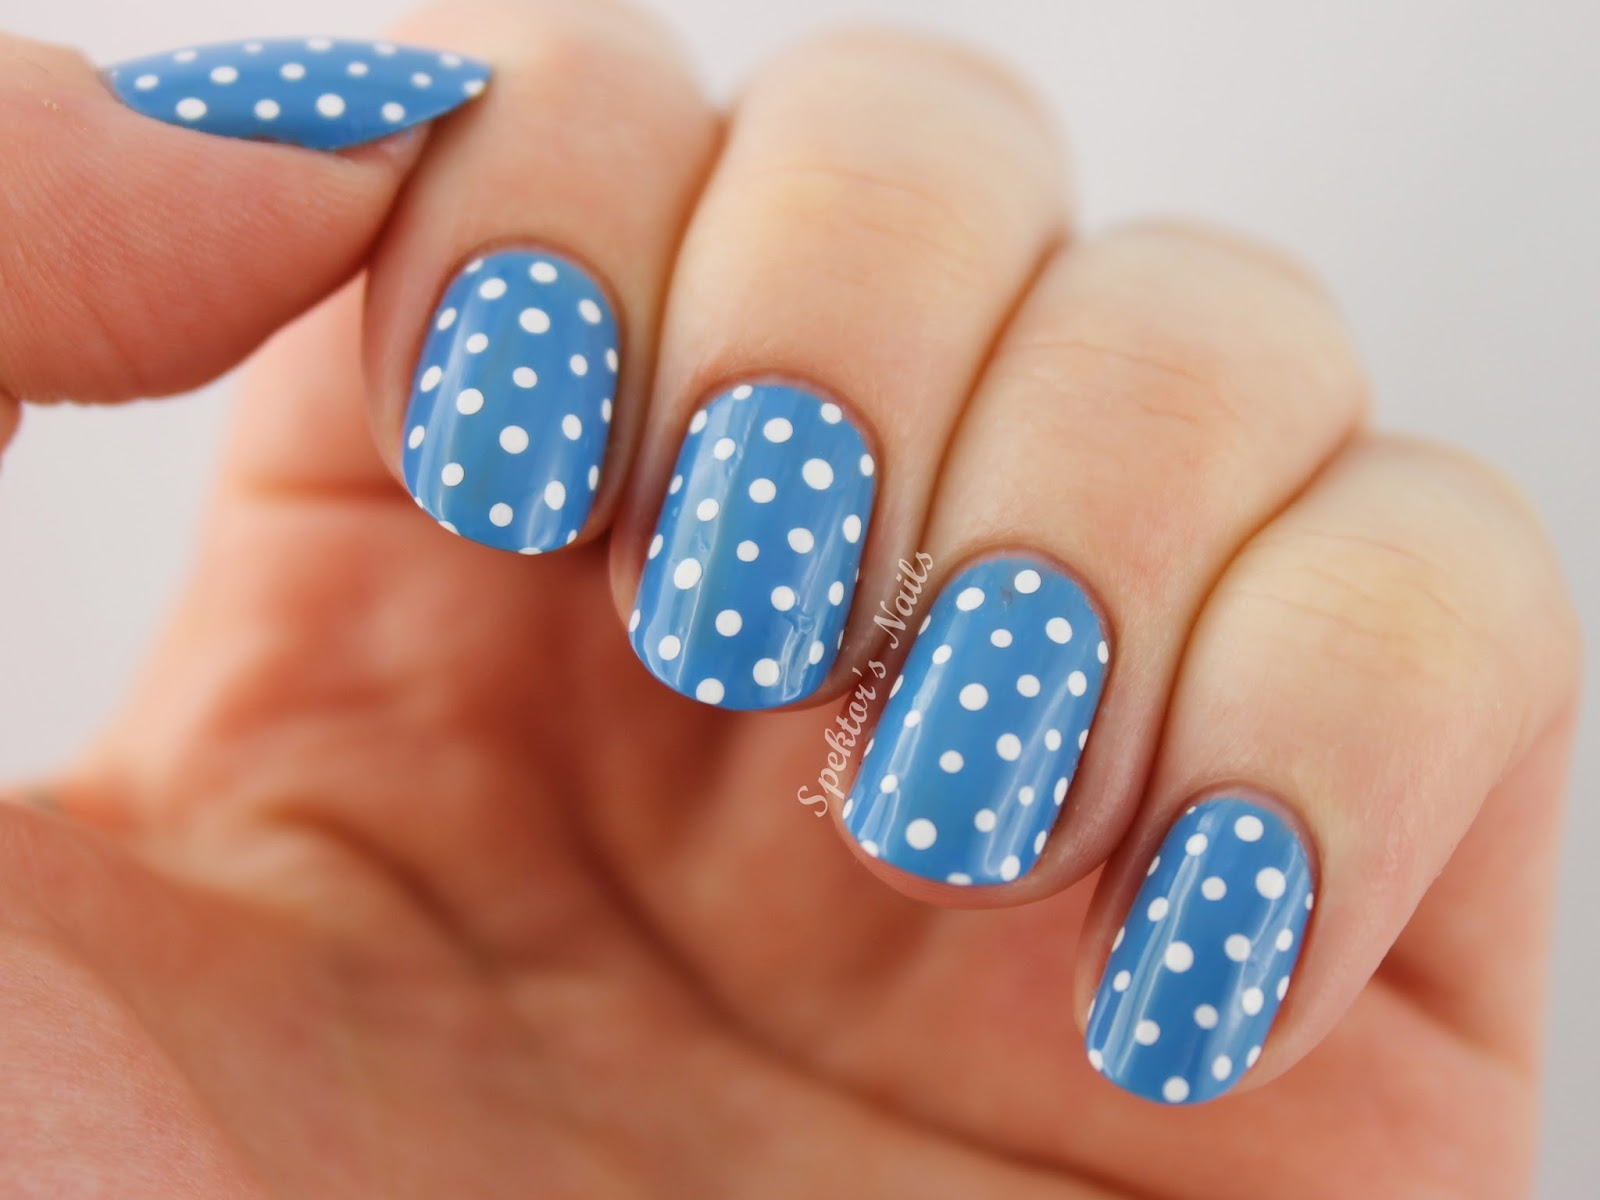 Polka Dots & Essie - Avenue Maintain